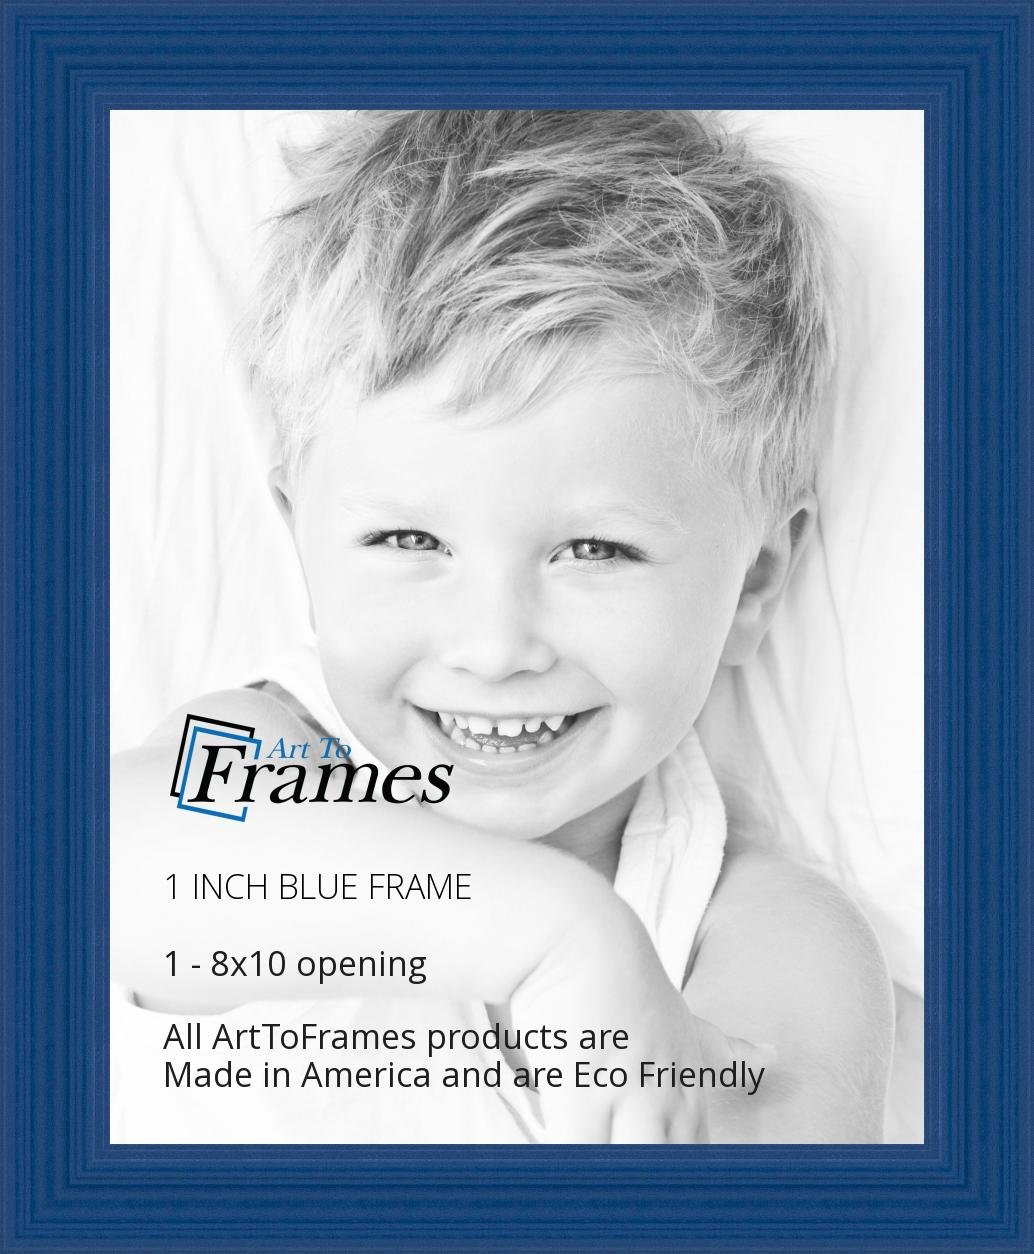 Amazon arttoframes 8x10 inch blue stain on red leaf maple amazon arttoframes 8x10 inch blue stain on red leaf maple wood picture frame wom0066 60823 yblu 8x10 jeuxipadfo Image collections